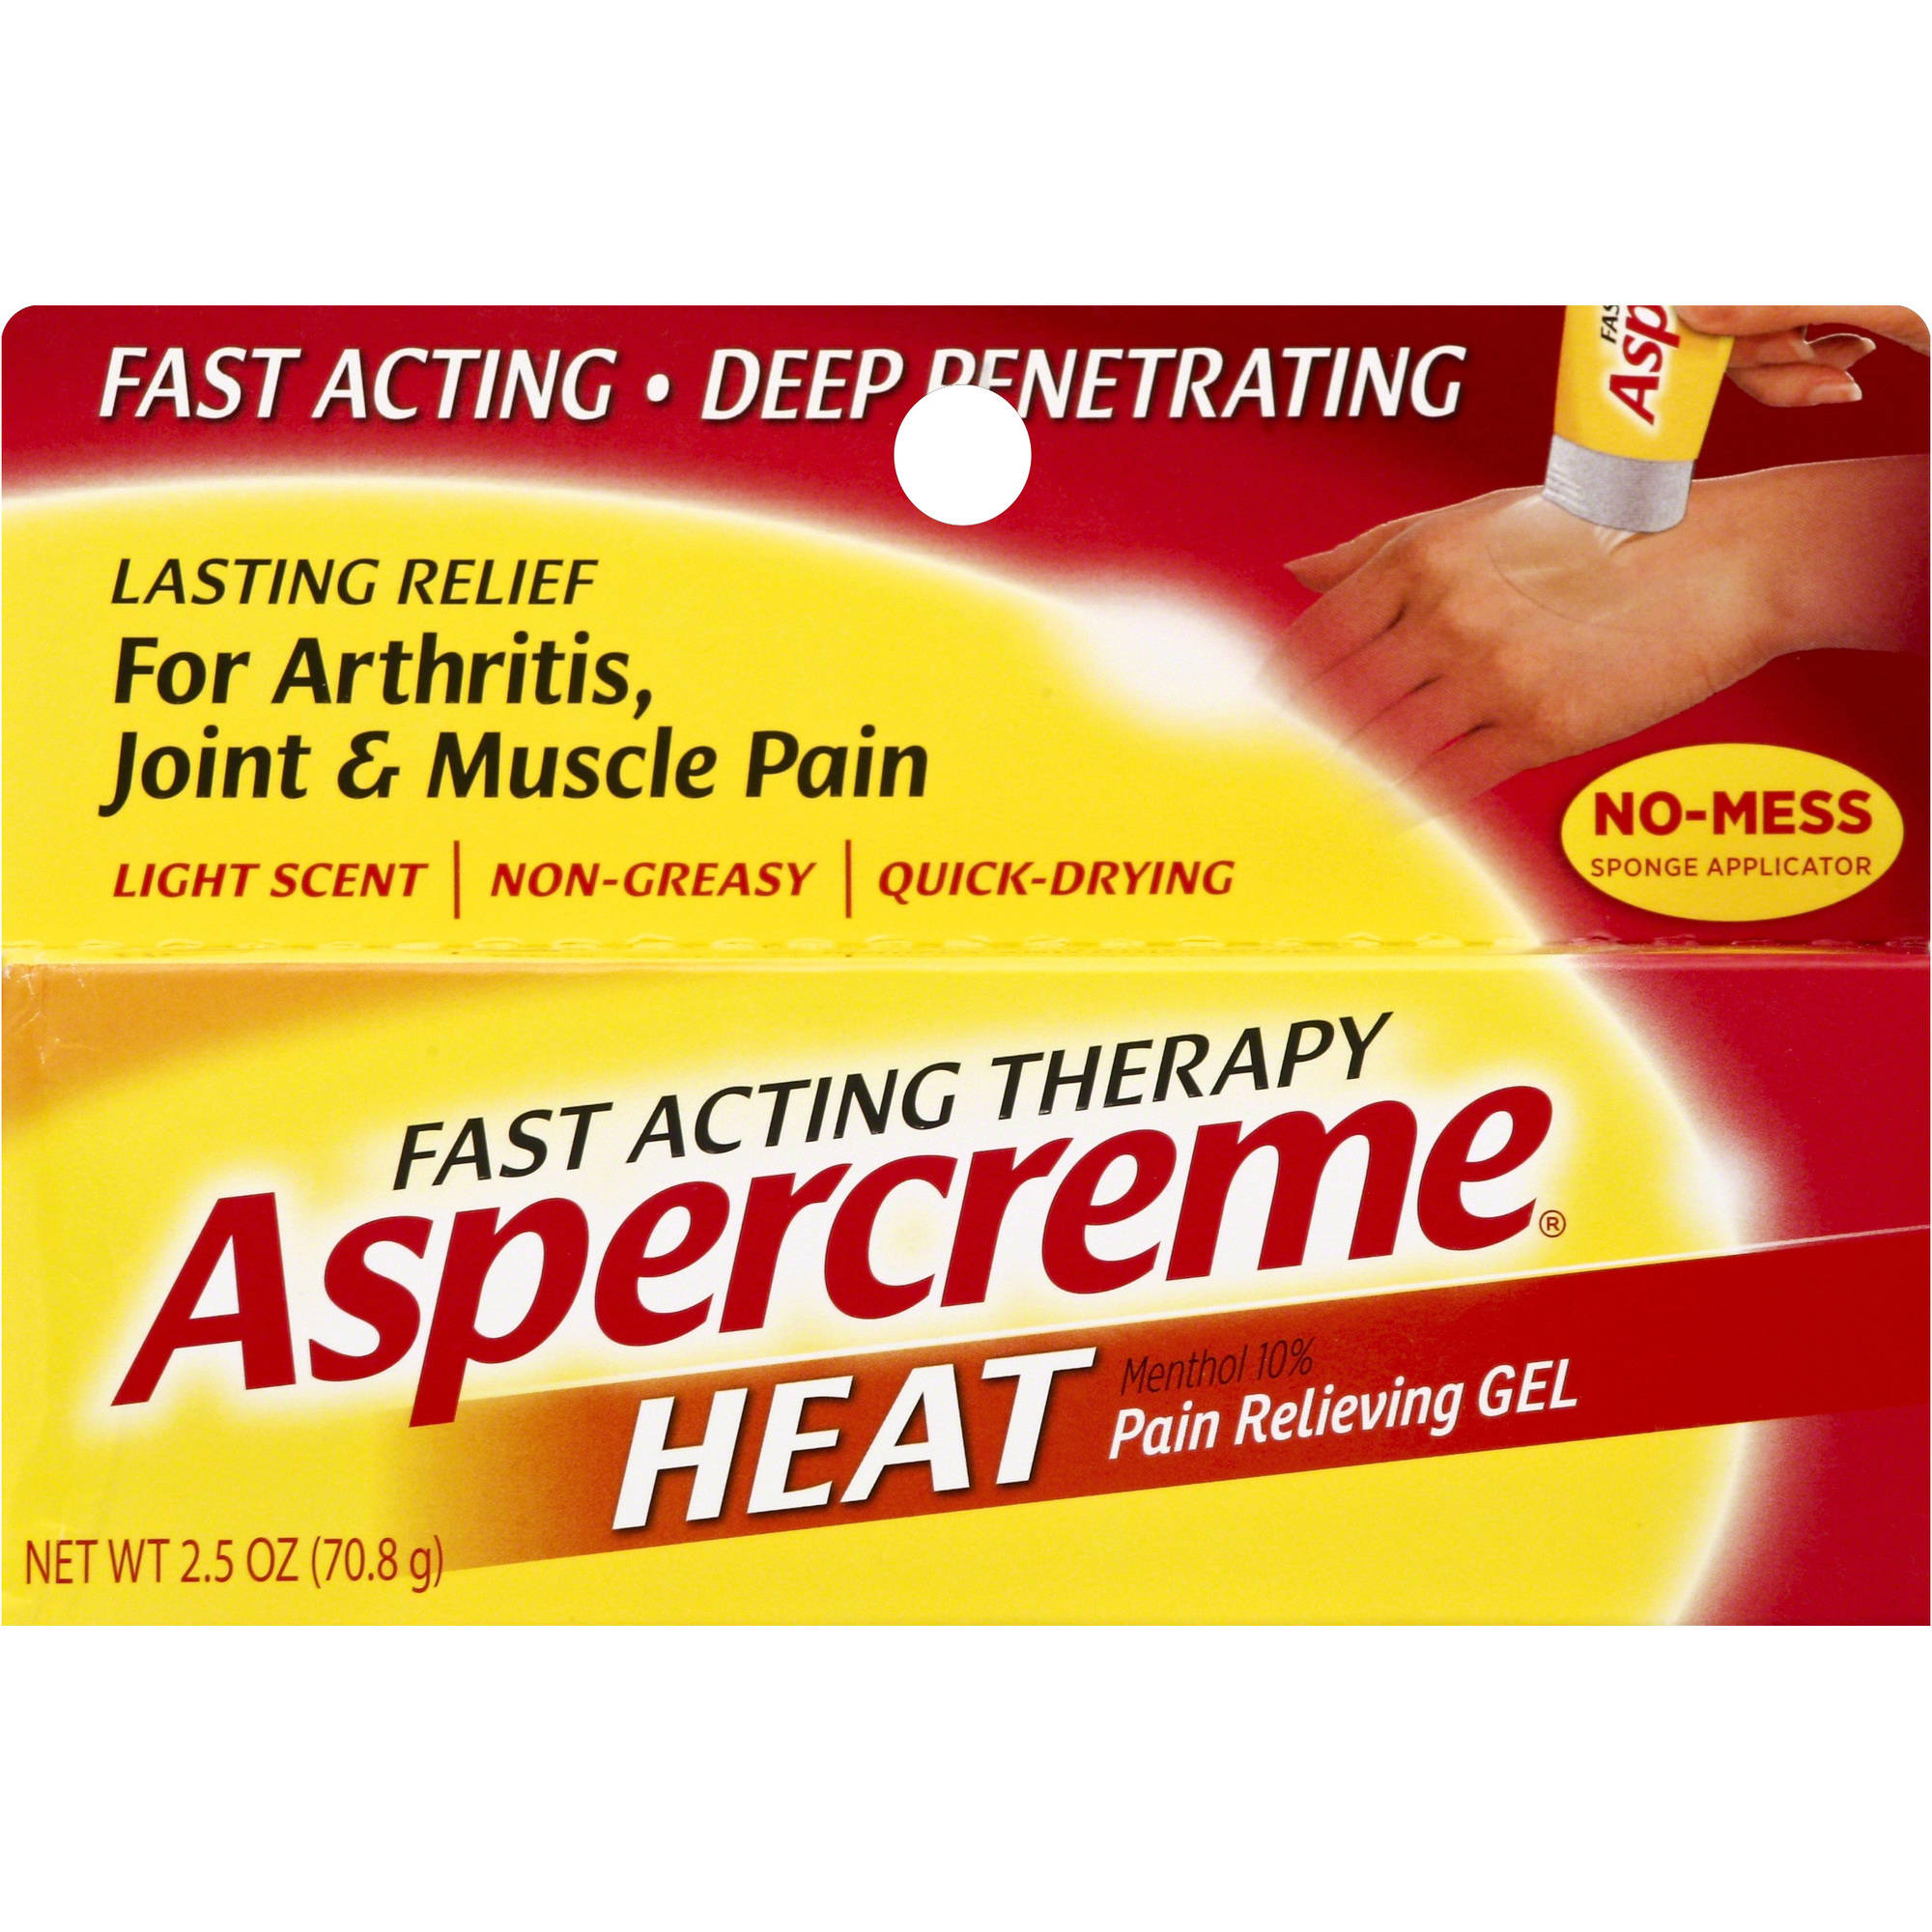 Aspercreme Heat Fast Acting Therapy Pain Relieving Gel, 2.5 oz